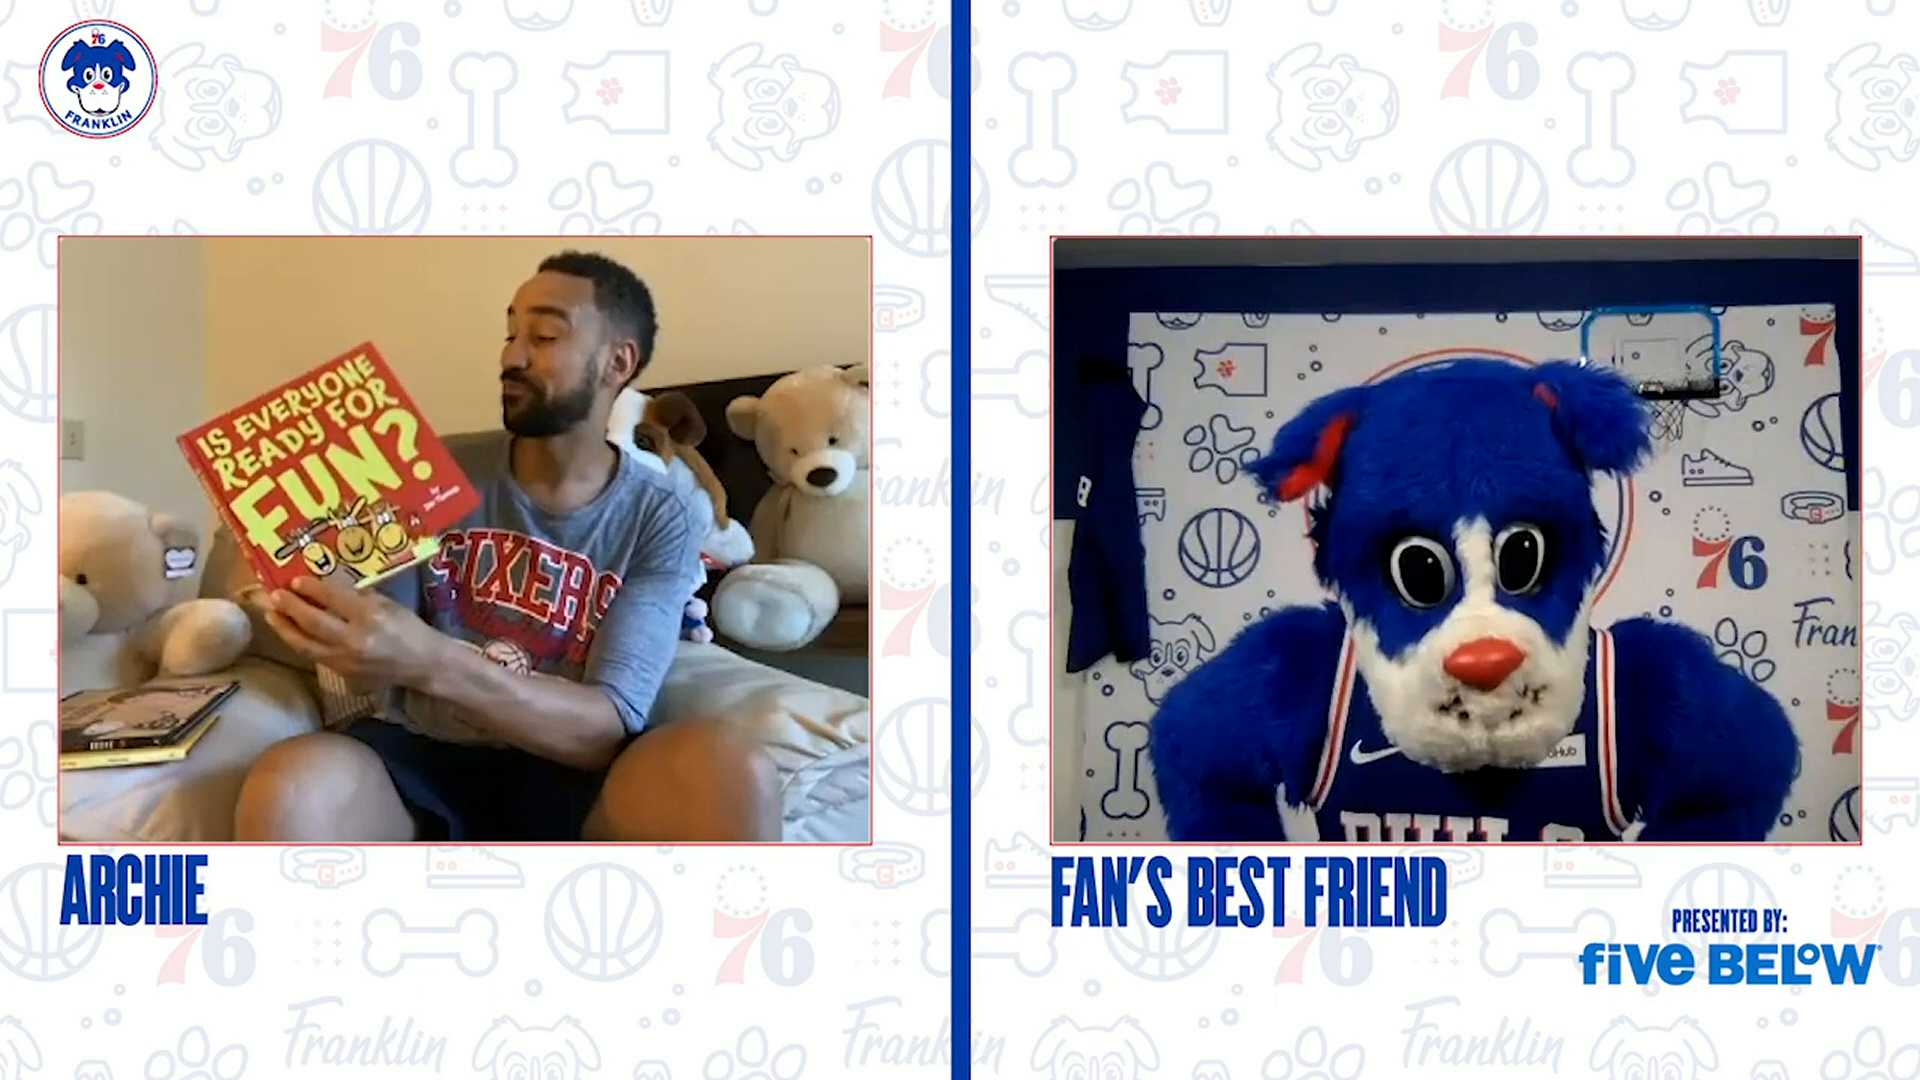 Story Time With Fan's Best Friend: Is Everyone Ready For Fun?